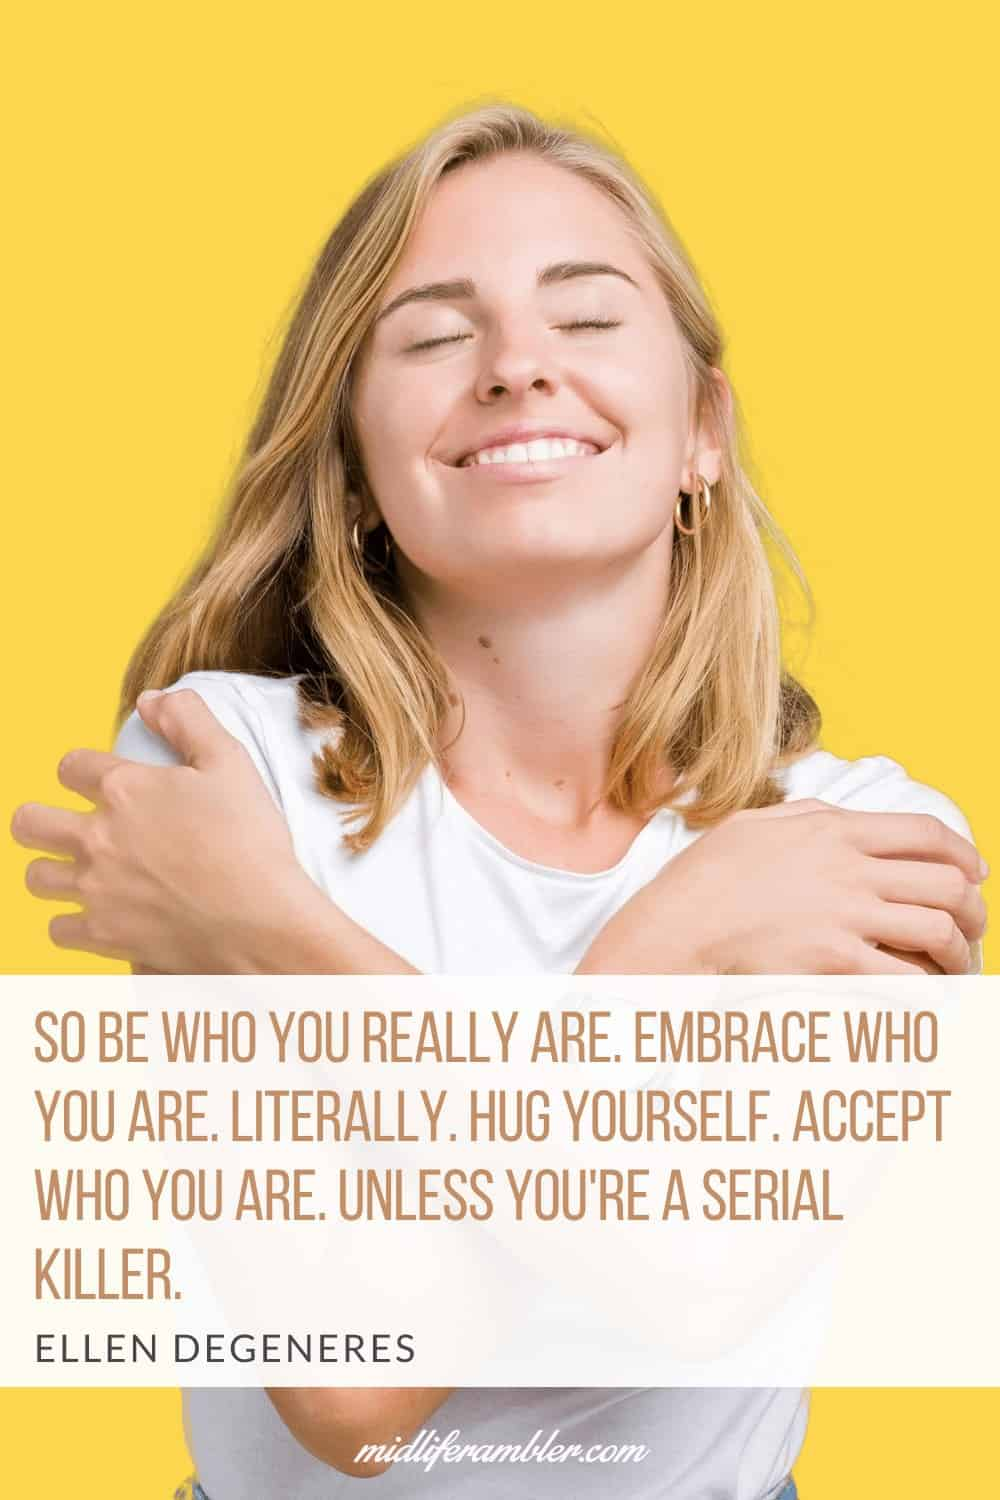 50 Self-Compassion Quotes and Affirmations to Help You Learn to Love and Accept Yourself - So be who you really are. Embrace who you are. Literally. Hug yourself. Accept who you are. Unless you're a serial killer. - Ellen DeGeneres